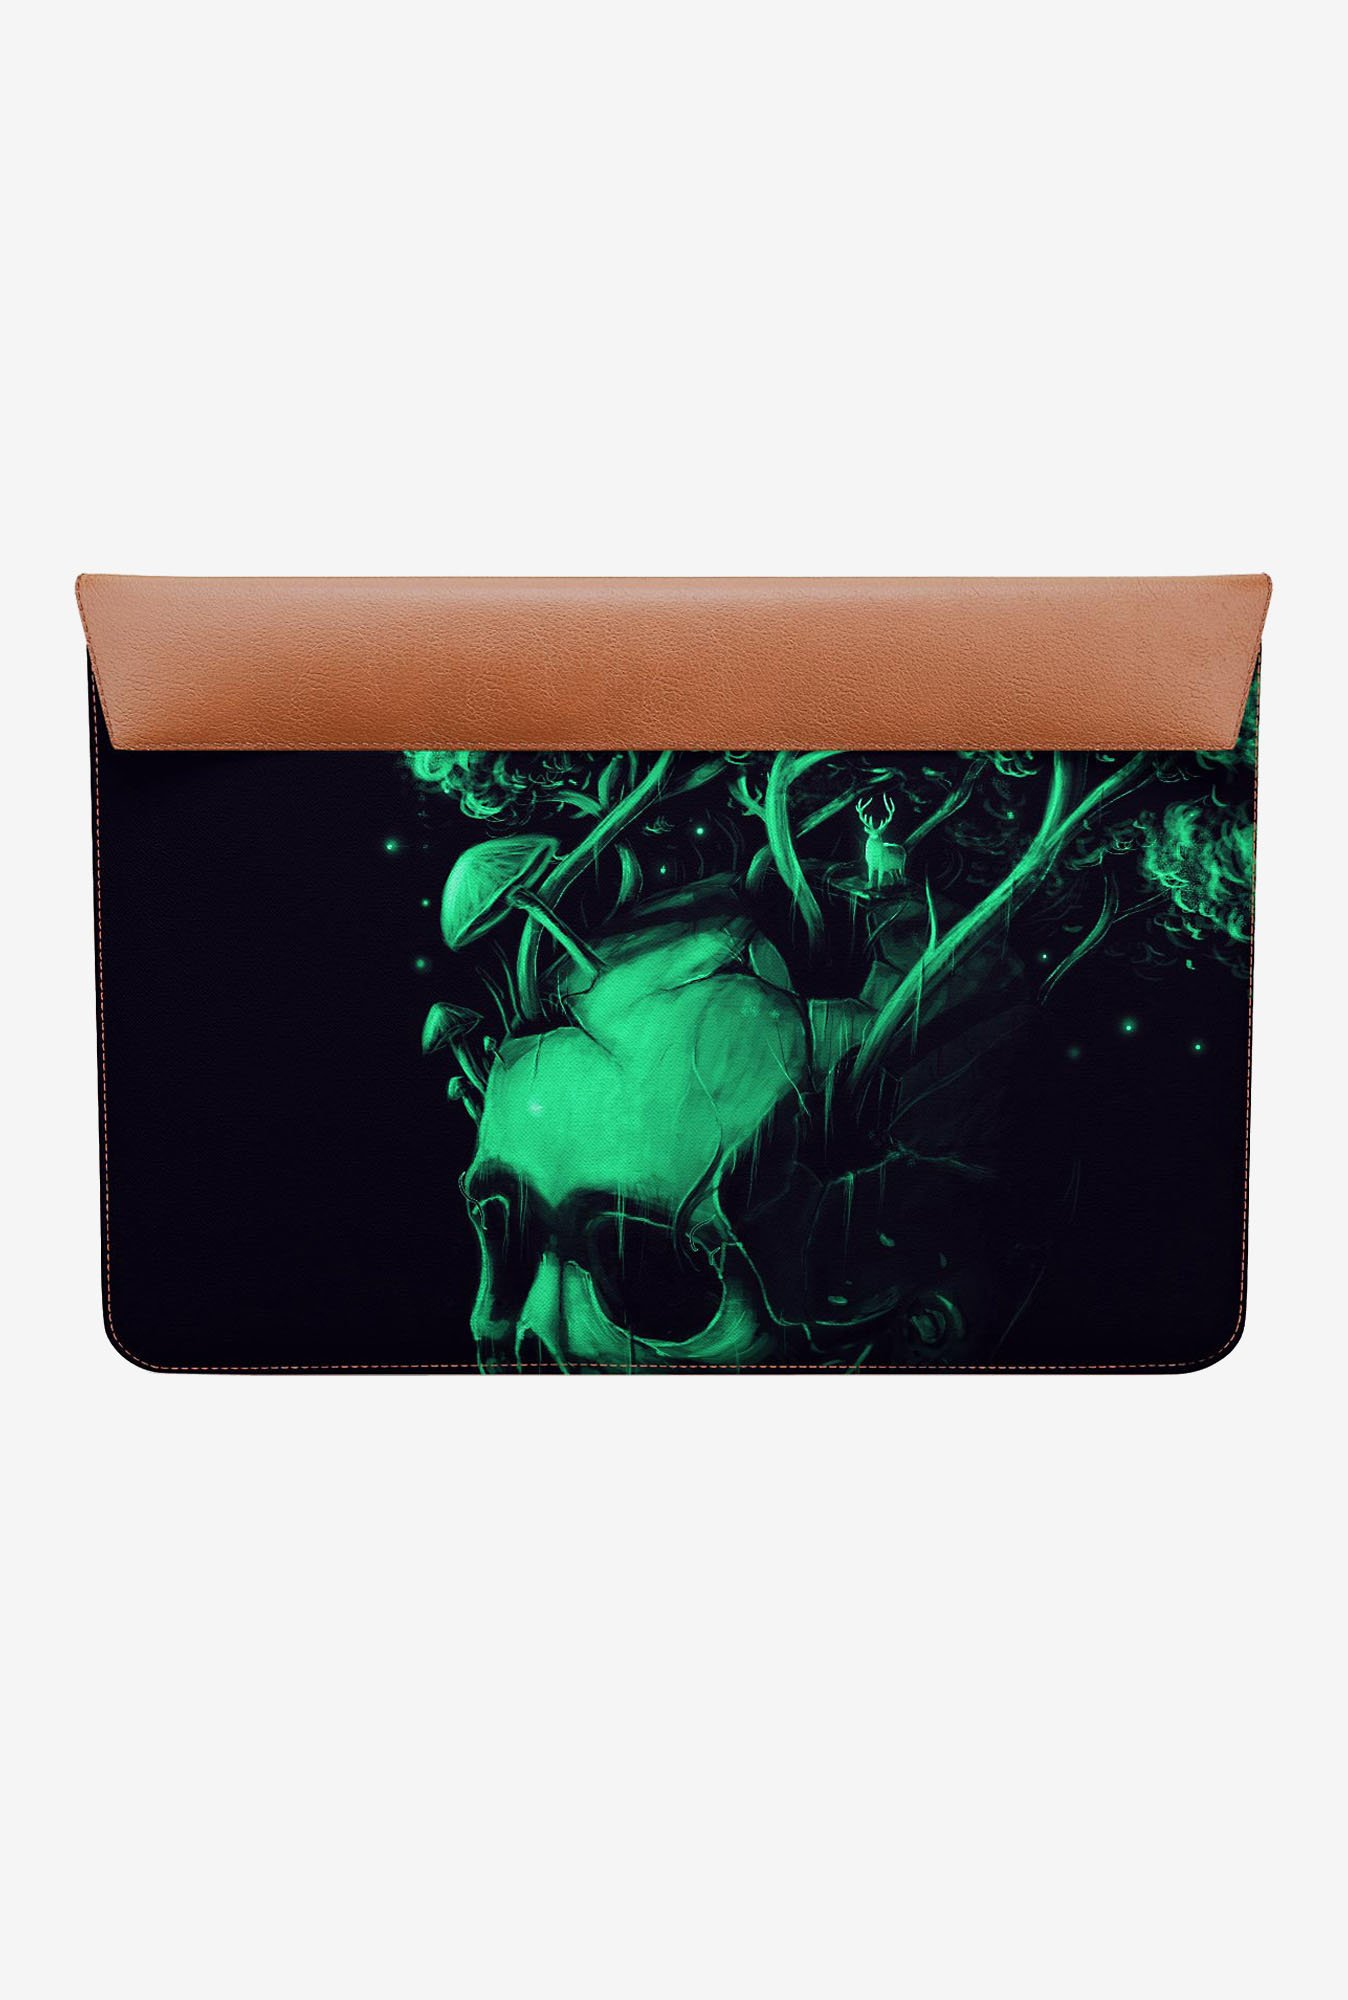 DailyObjects End Beginning MacBook Pro 13 Envelope Sleeve